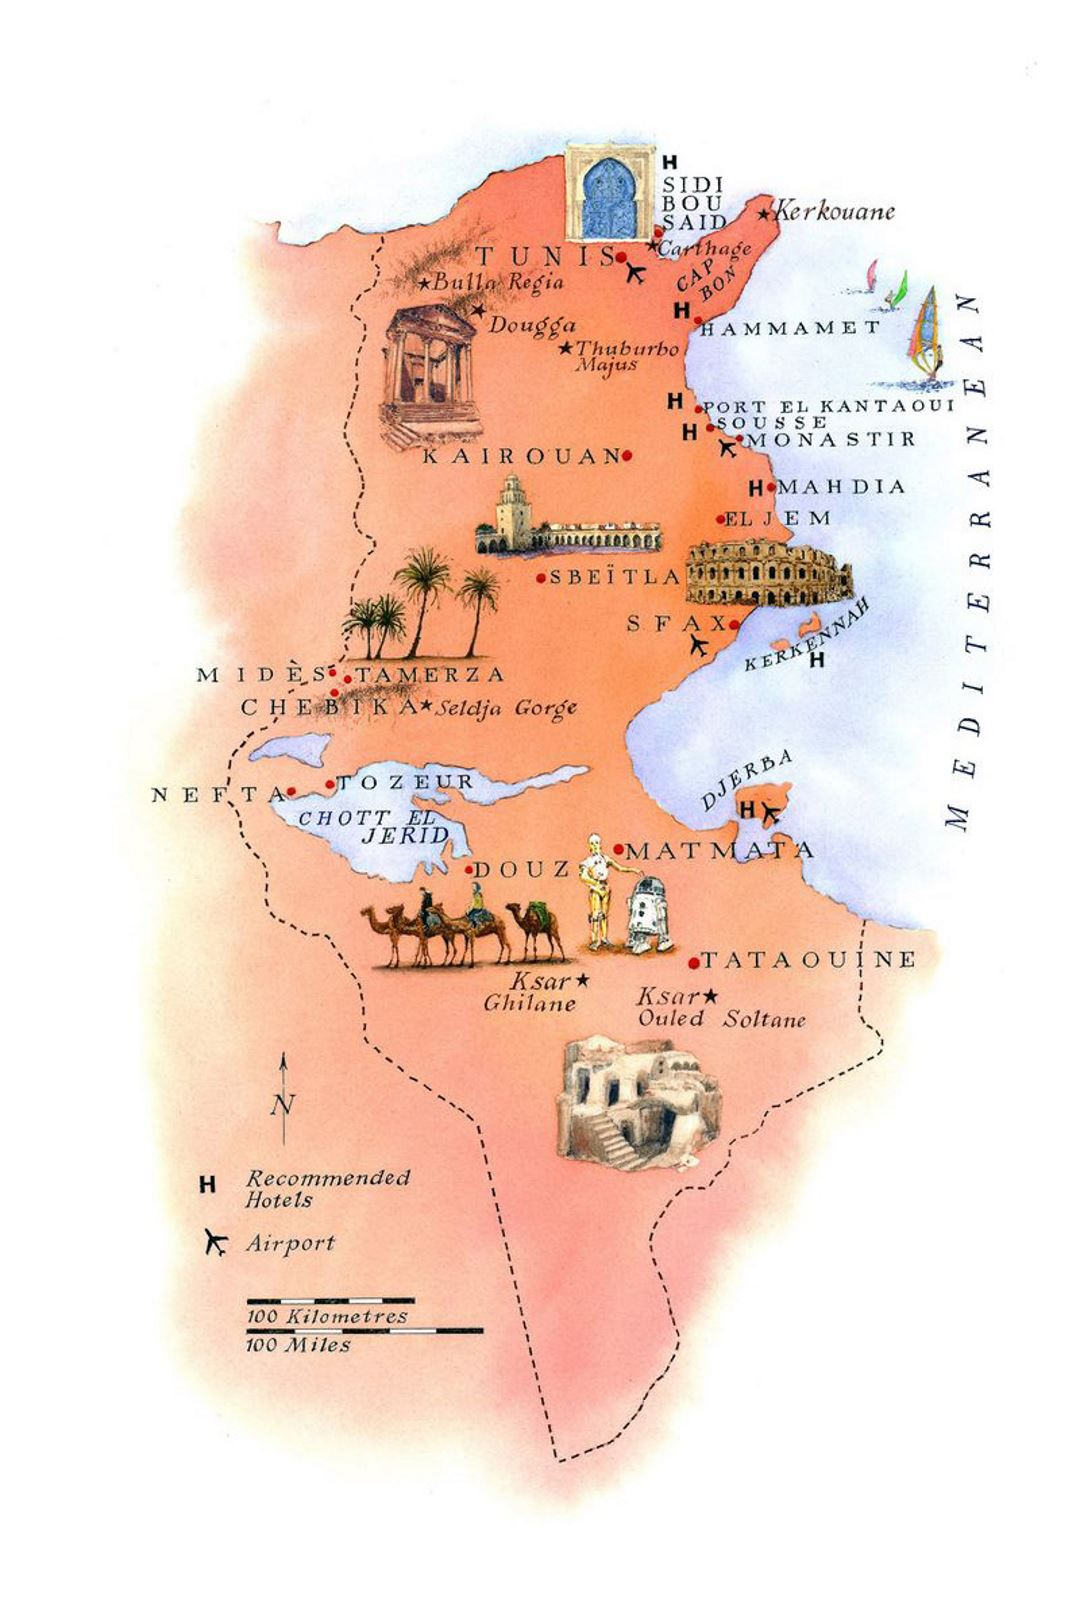 Detailed tourist illustrated map of Tunisia